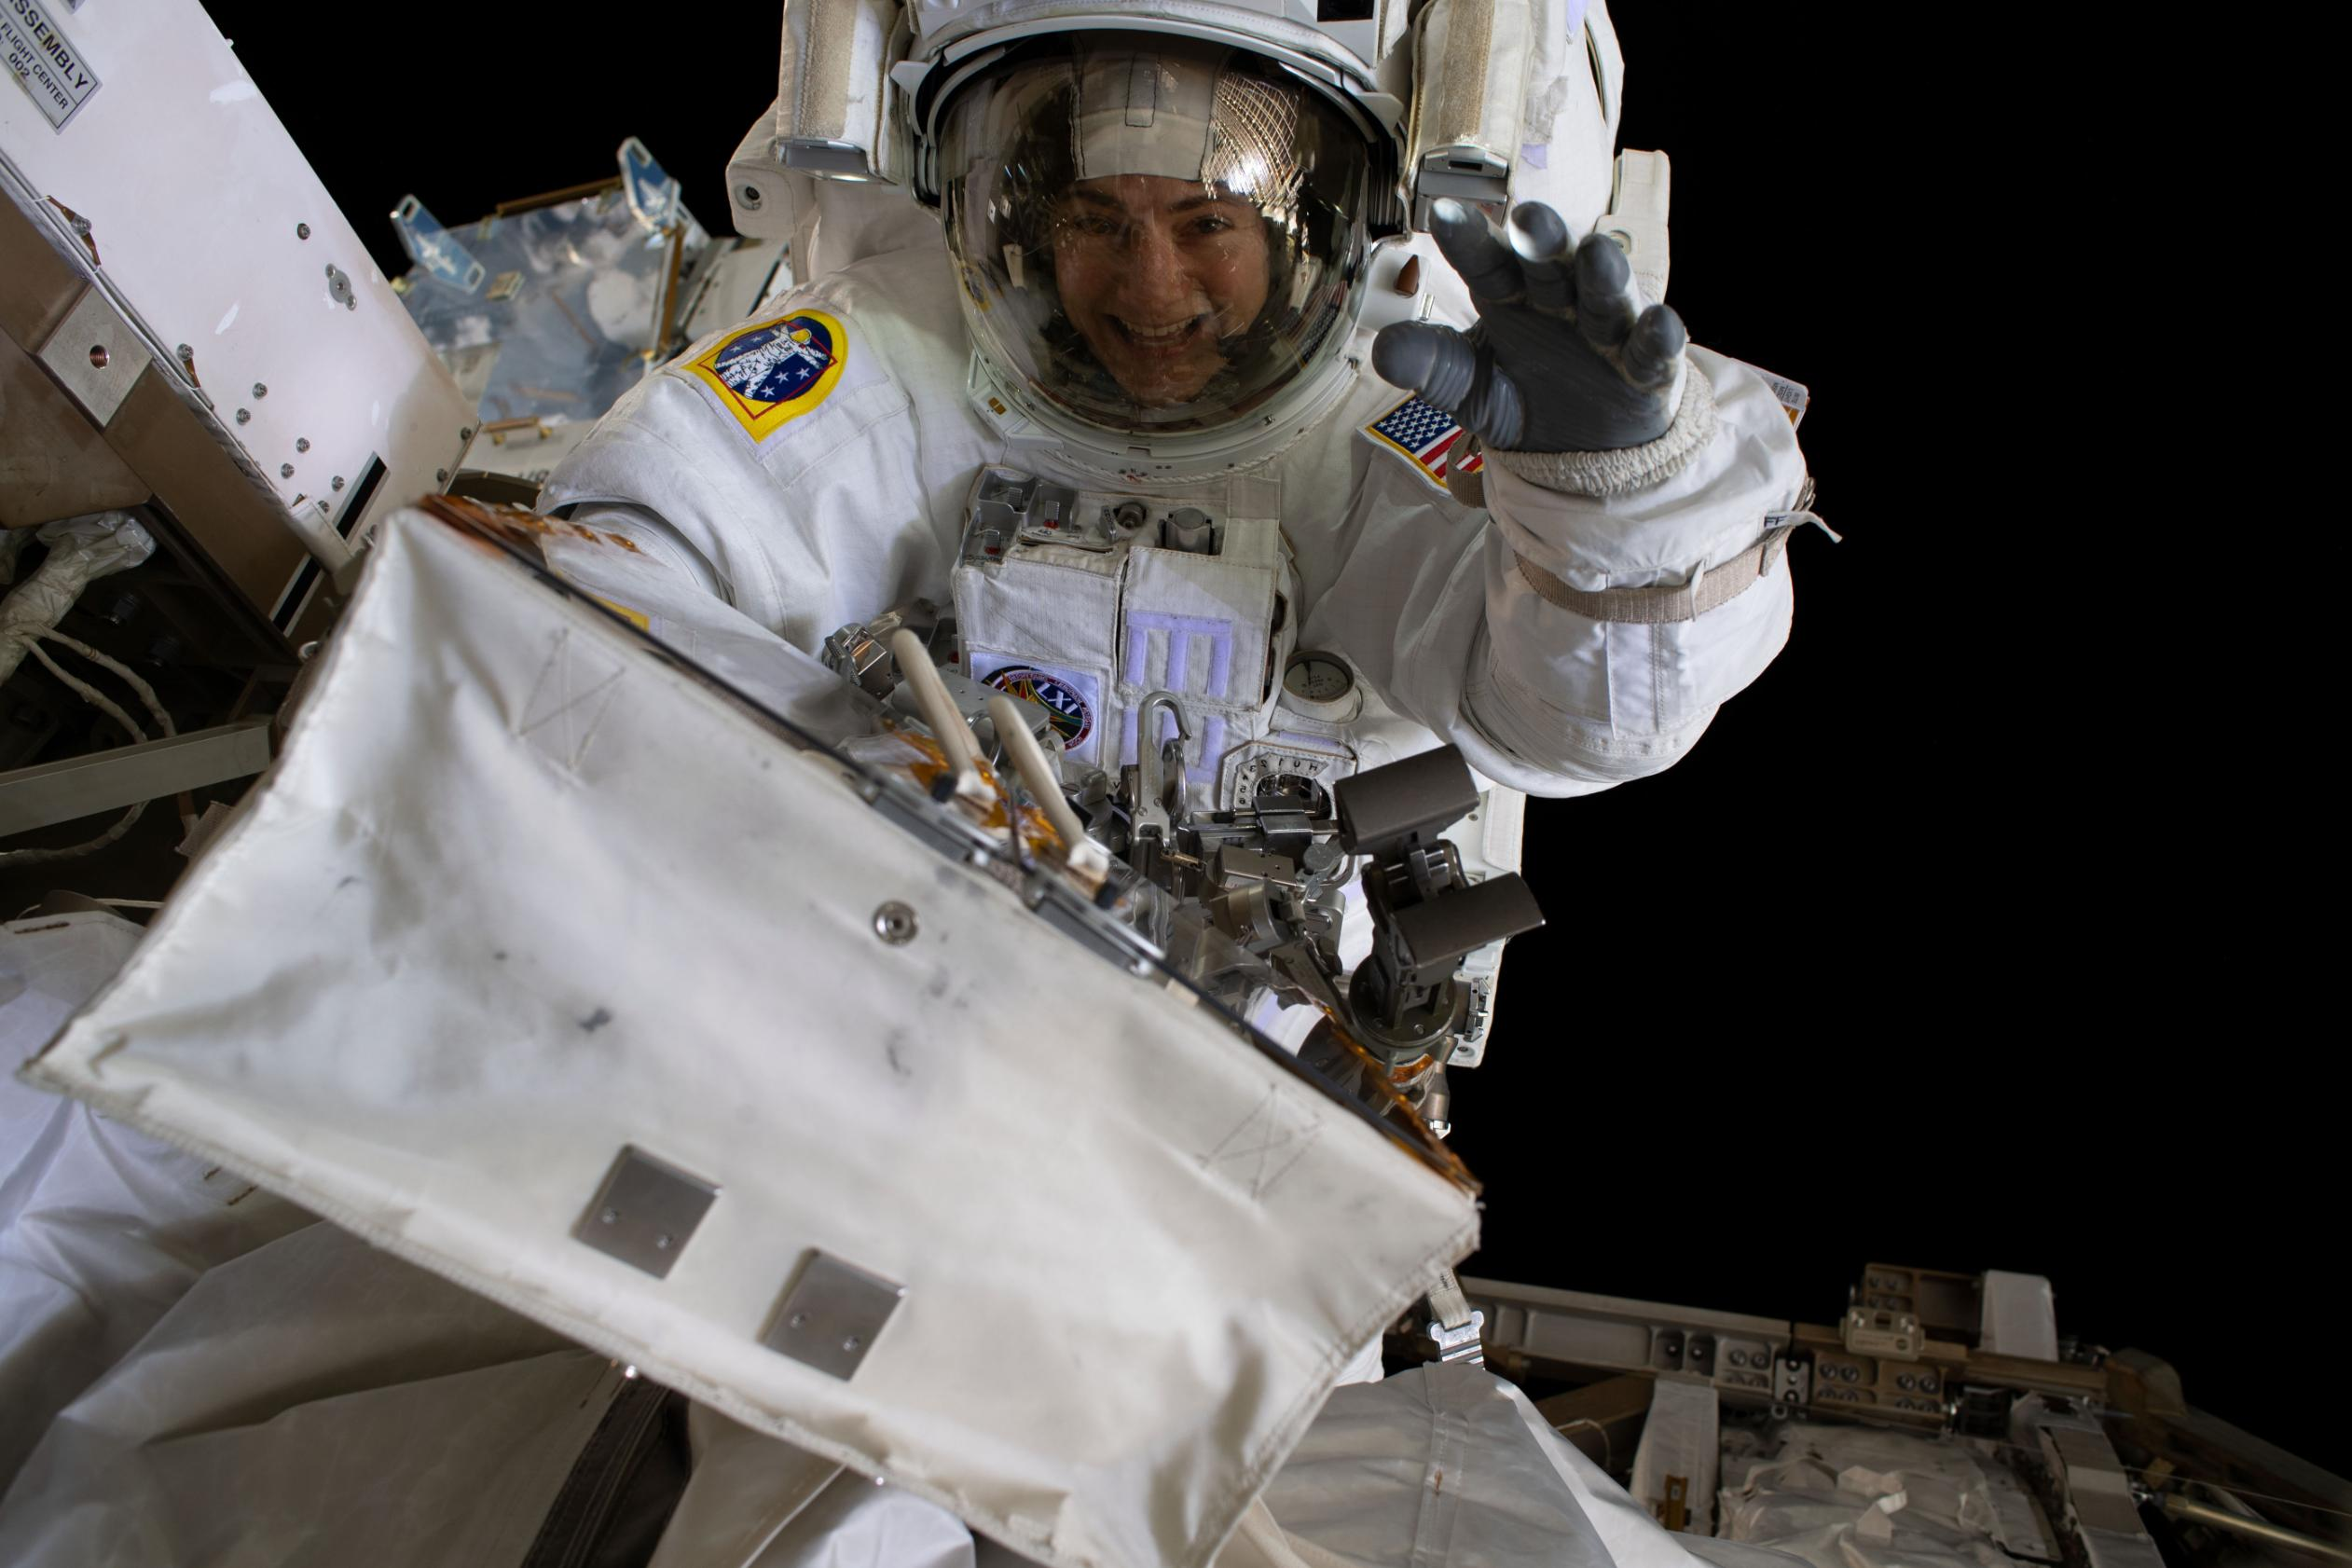 Second all-female spacewalk briefly hampered by helmet issue